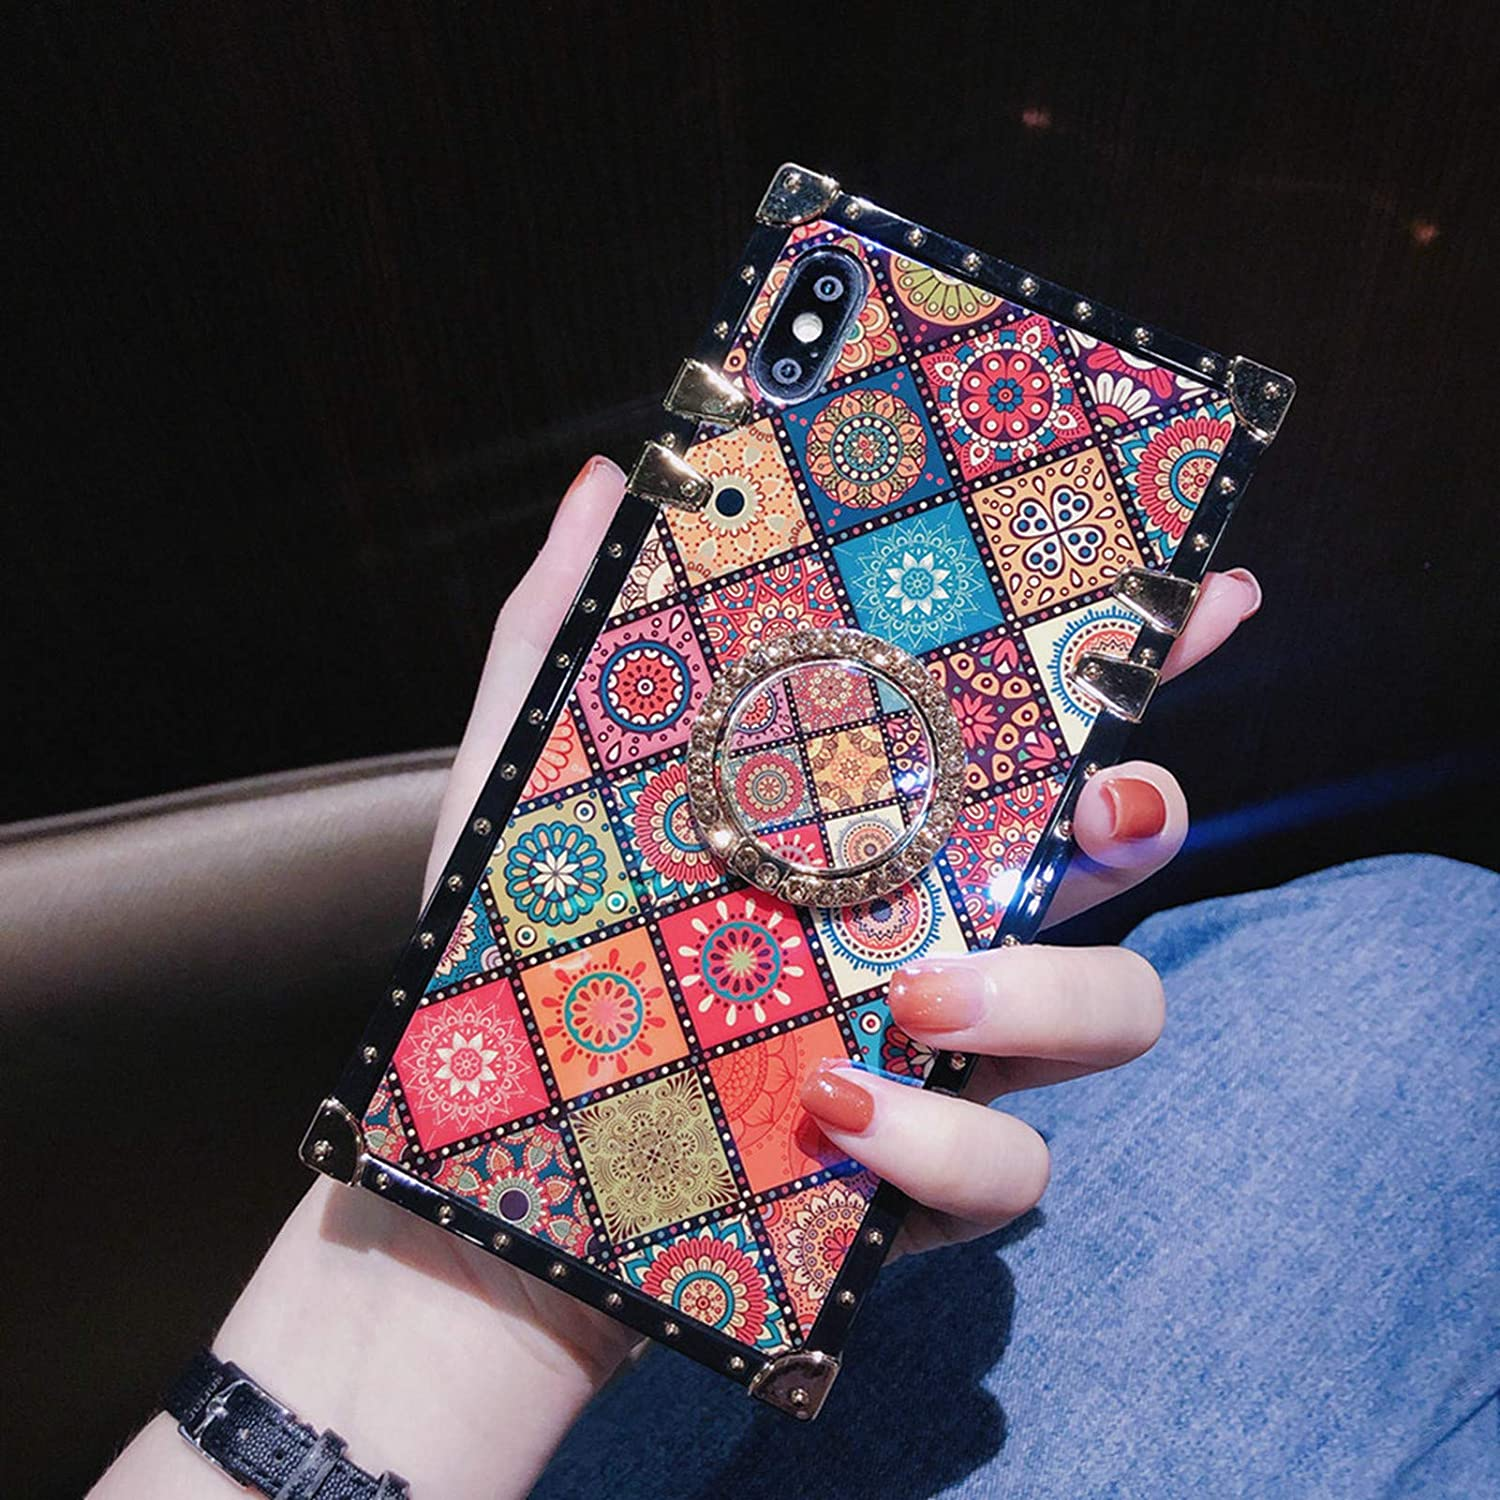 Retro Square Blue Ray Phone Case Compatible with iPhone 12 Pro Max with Holder Ring Indian Hippie Bohemian Psychedelic Peacock Mandala Protective Shockproof Cover -Pattern2